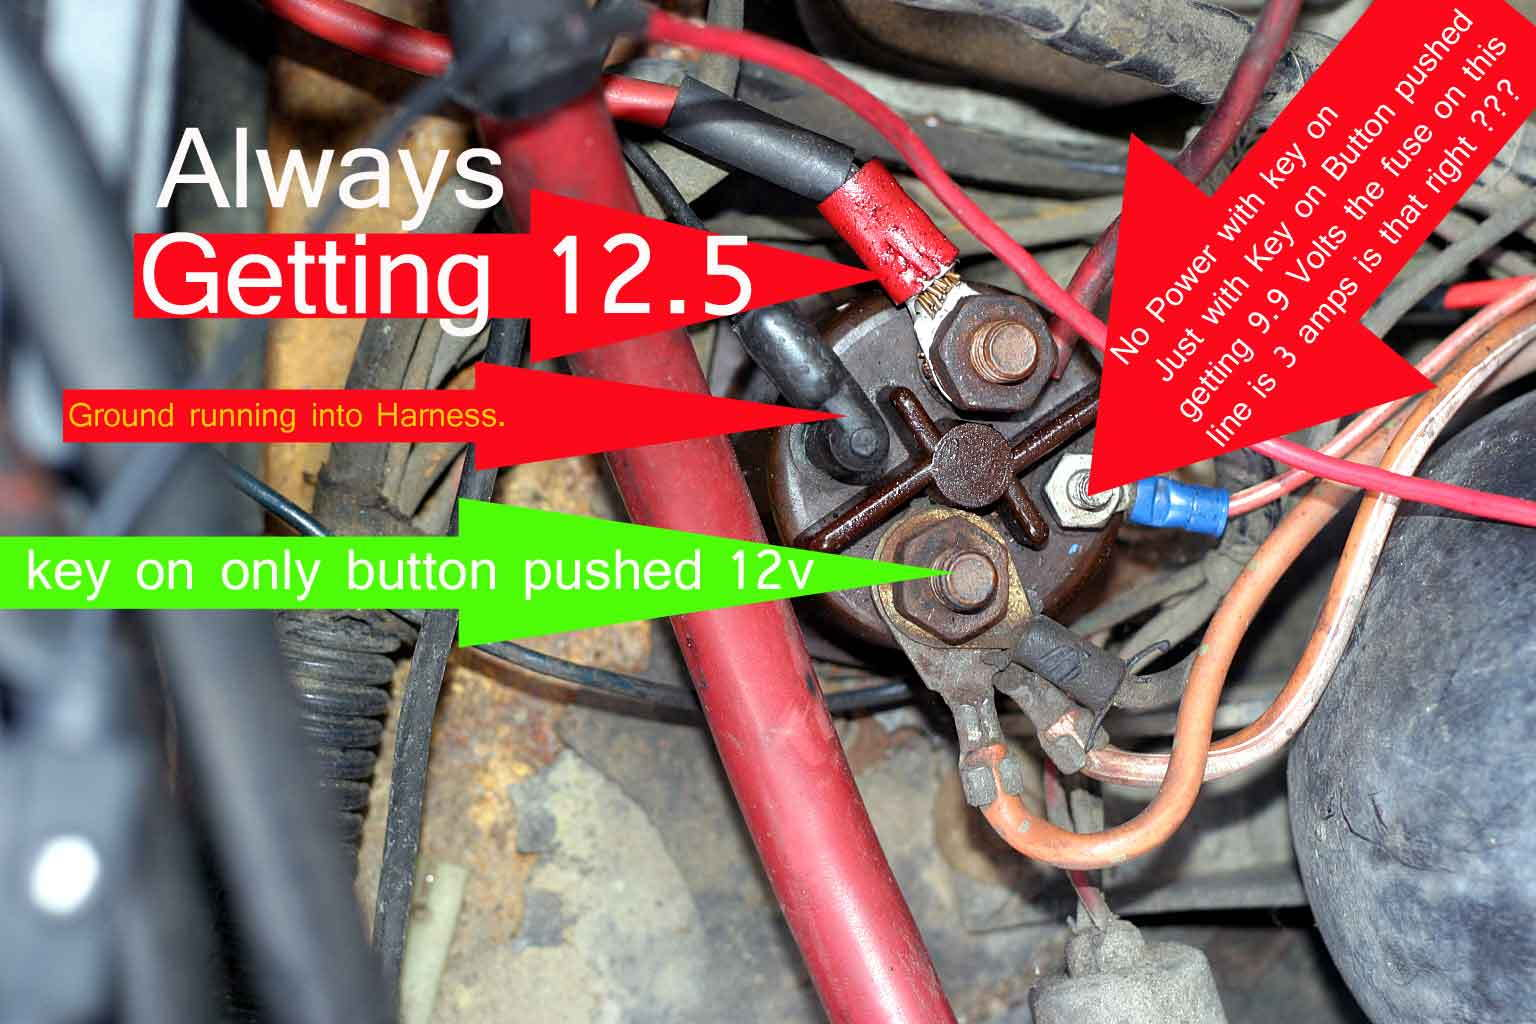 1339432 Manual Glow Plug Test in addition Used toyota parts likewise Fj40 Wiring Diagrams besides 231303646675 together with Nissan Frontier Thermostat Location 2001 4 Cylinder. on toyota pickup wiring harness replacement